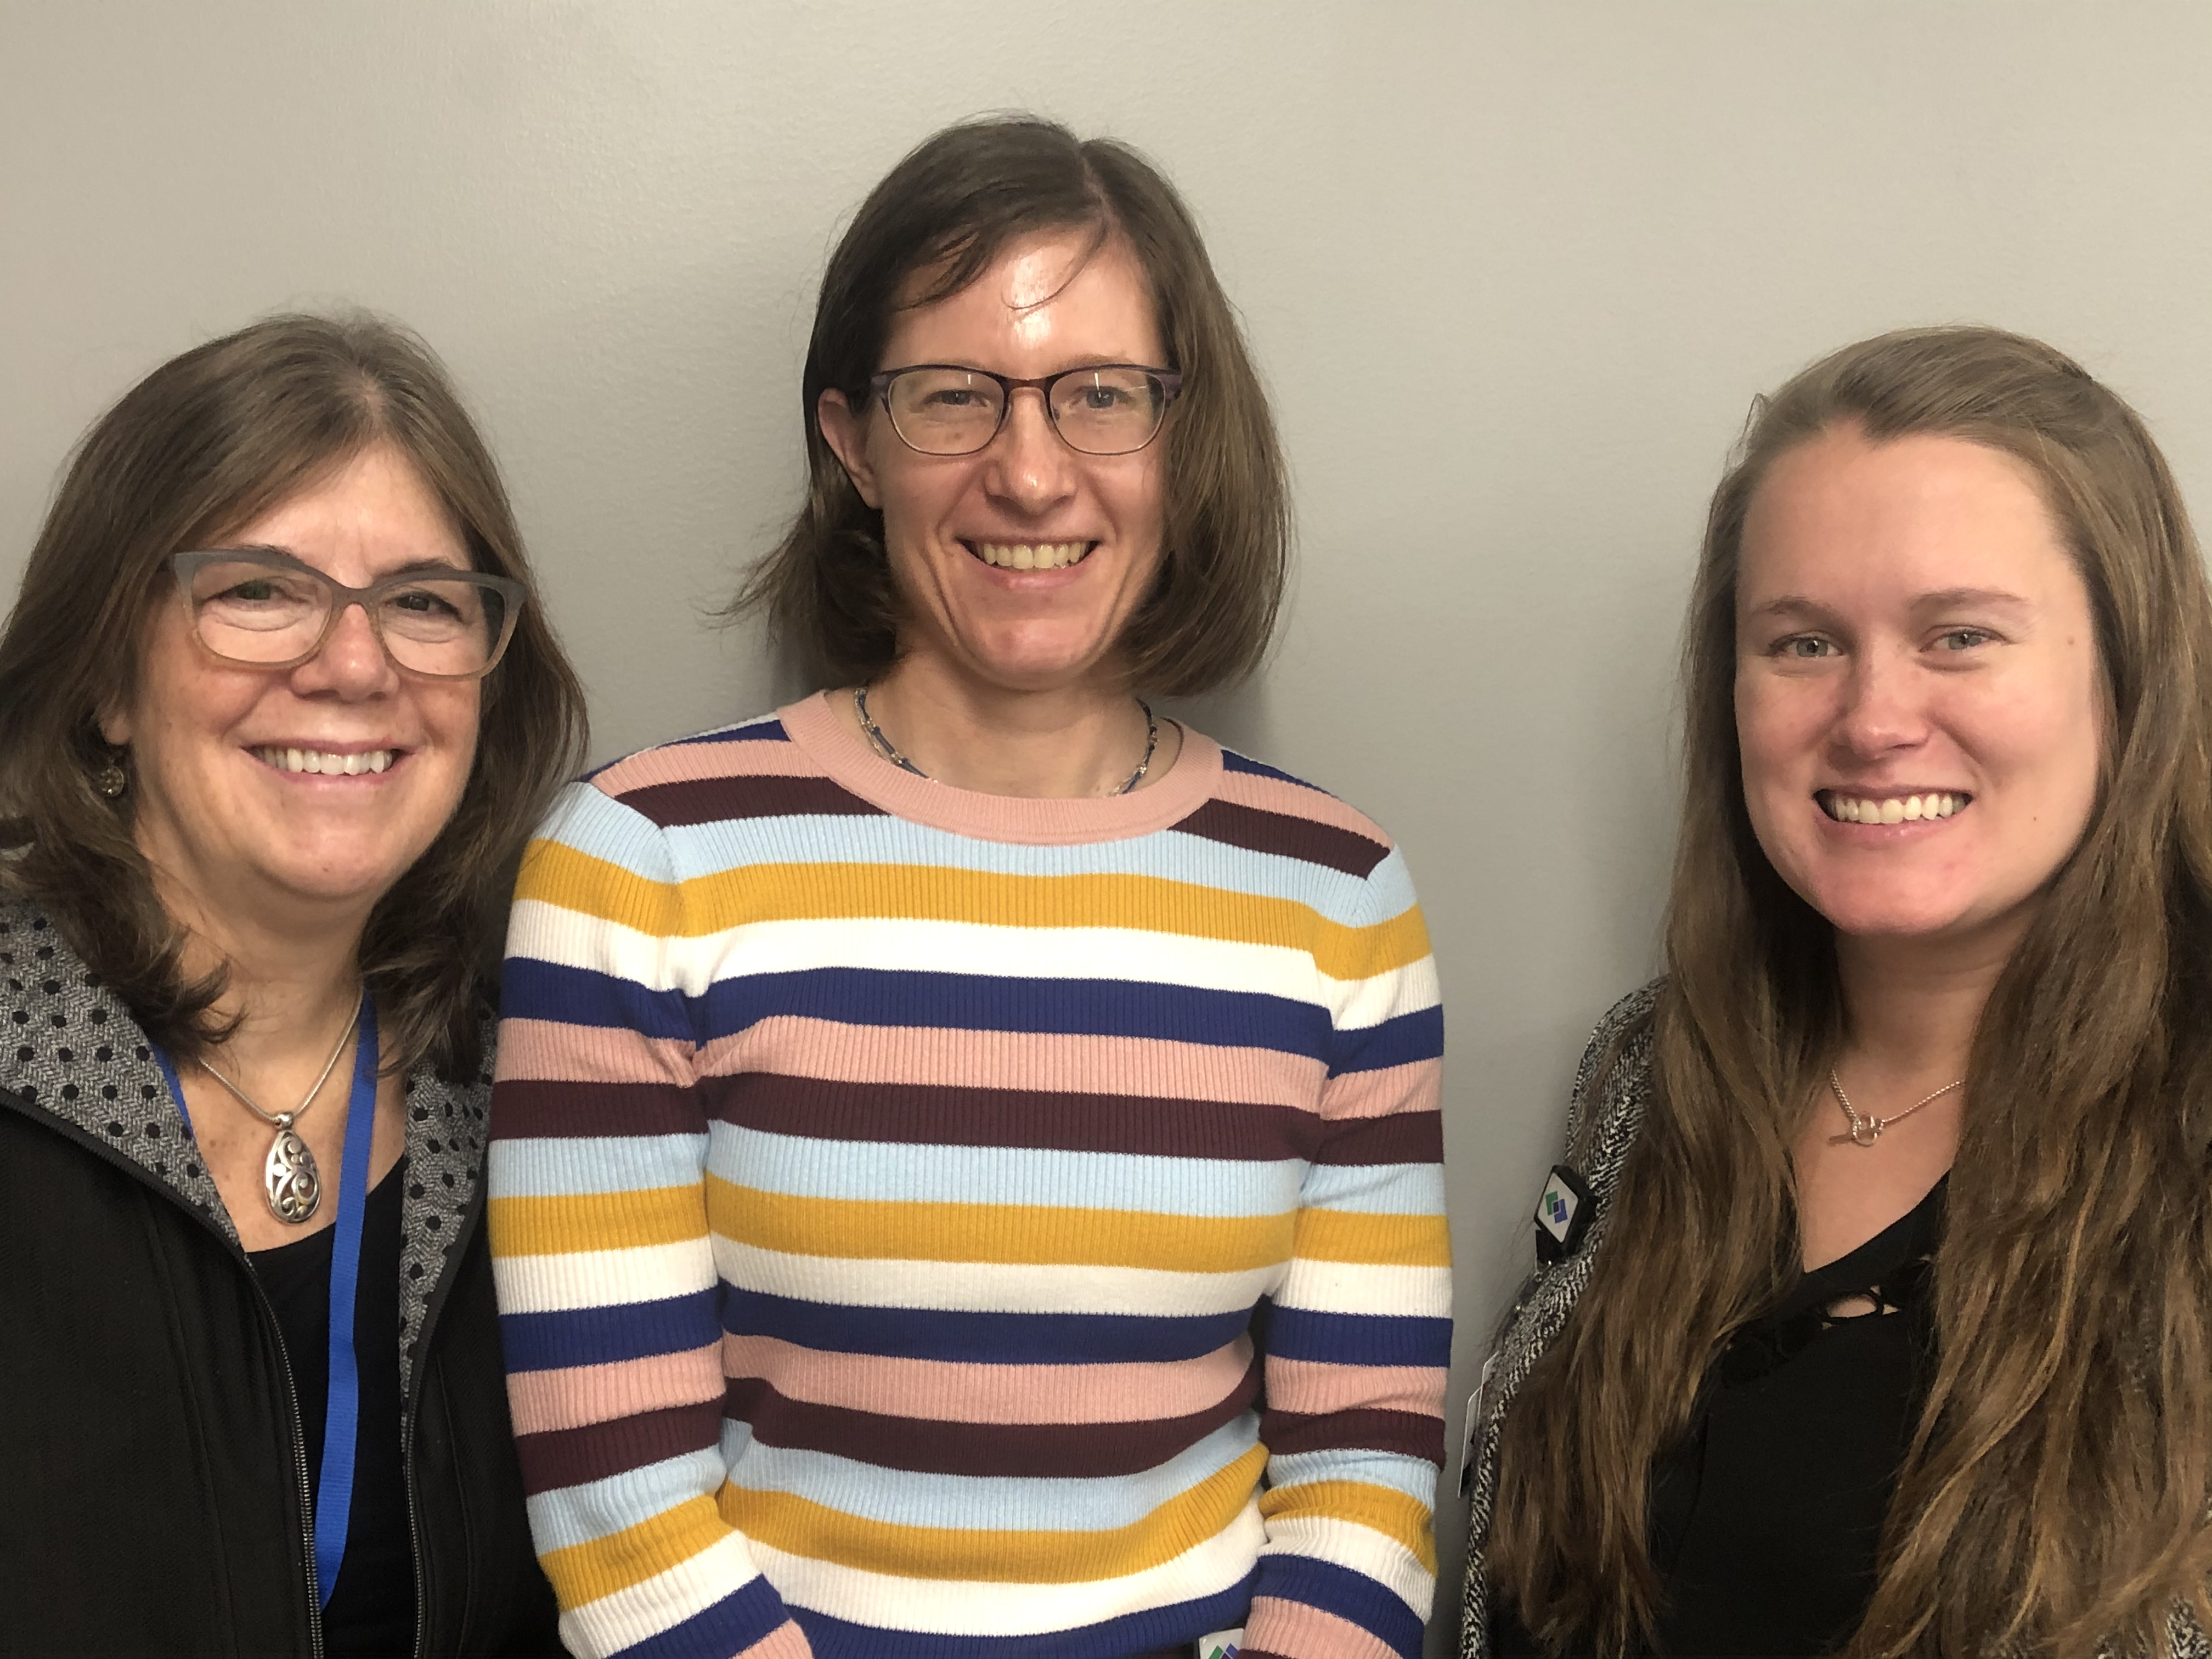 From left to right: Elizabeth Arendt, MD, Heather Cichanowski, MD, and Caitlin Chambers, MD